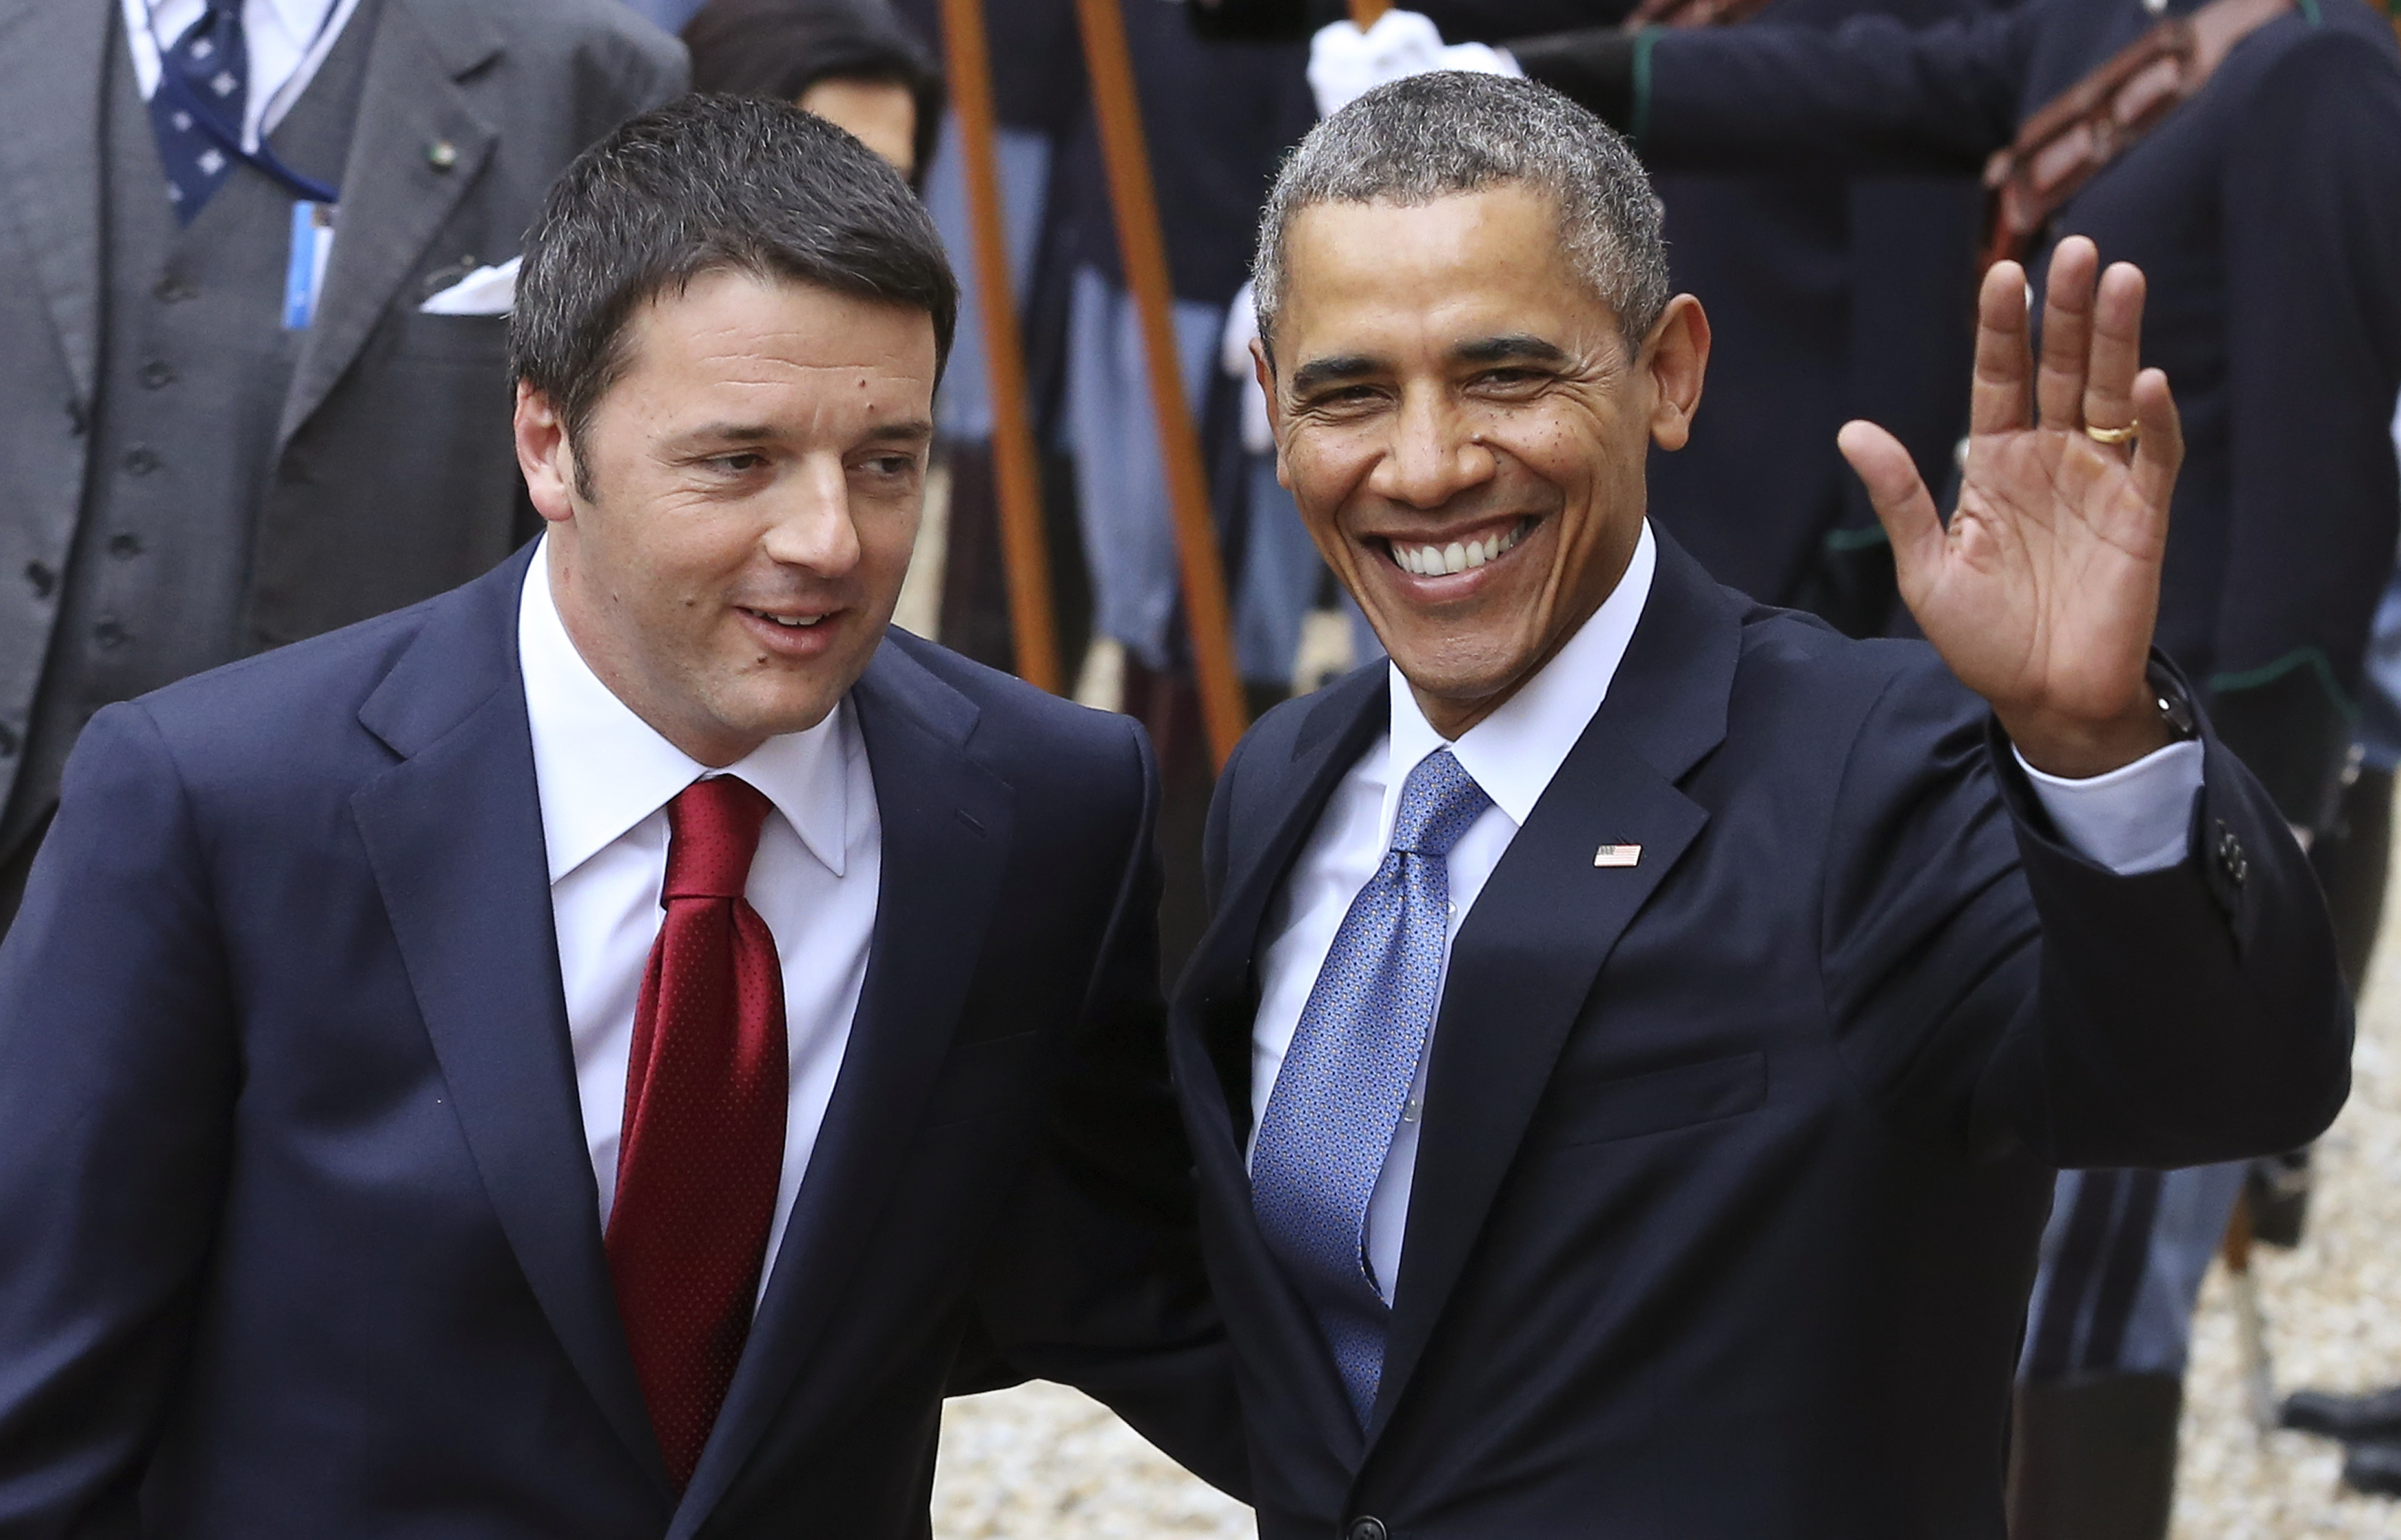 Obama S Visit To Italy Quiet But Crucial